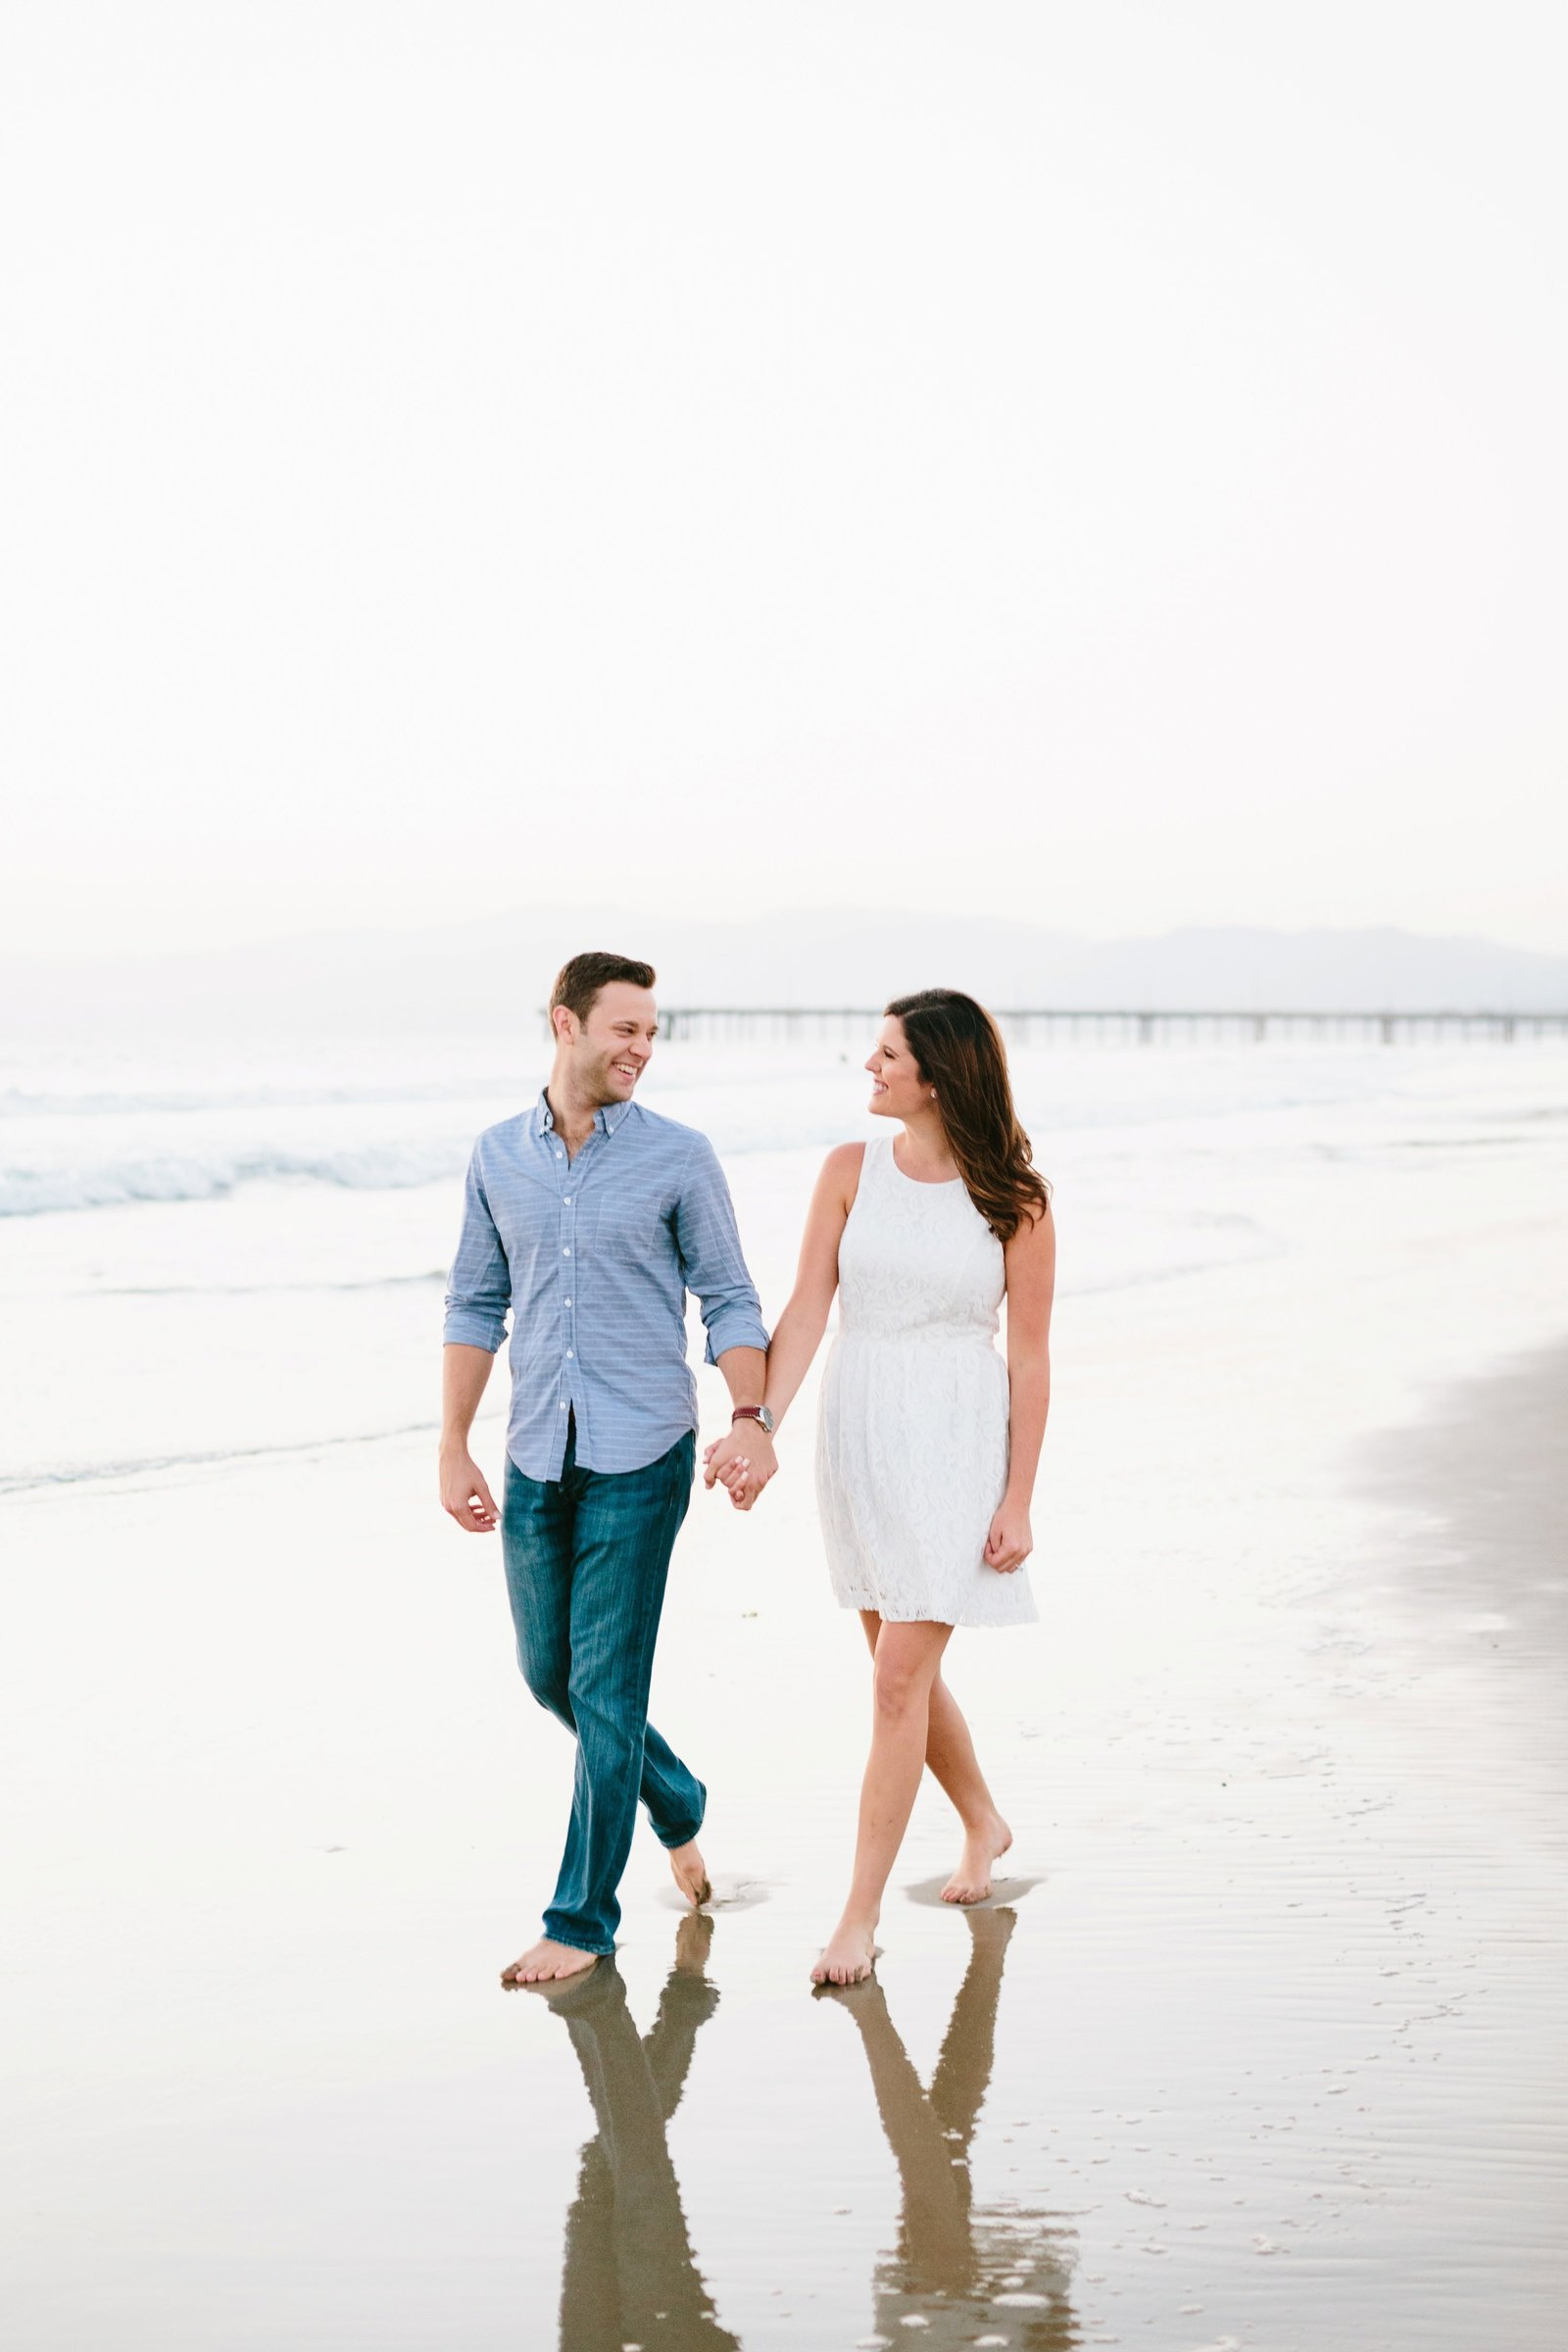 Engagement Photos-Jodee Debes Photography-023